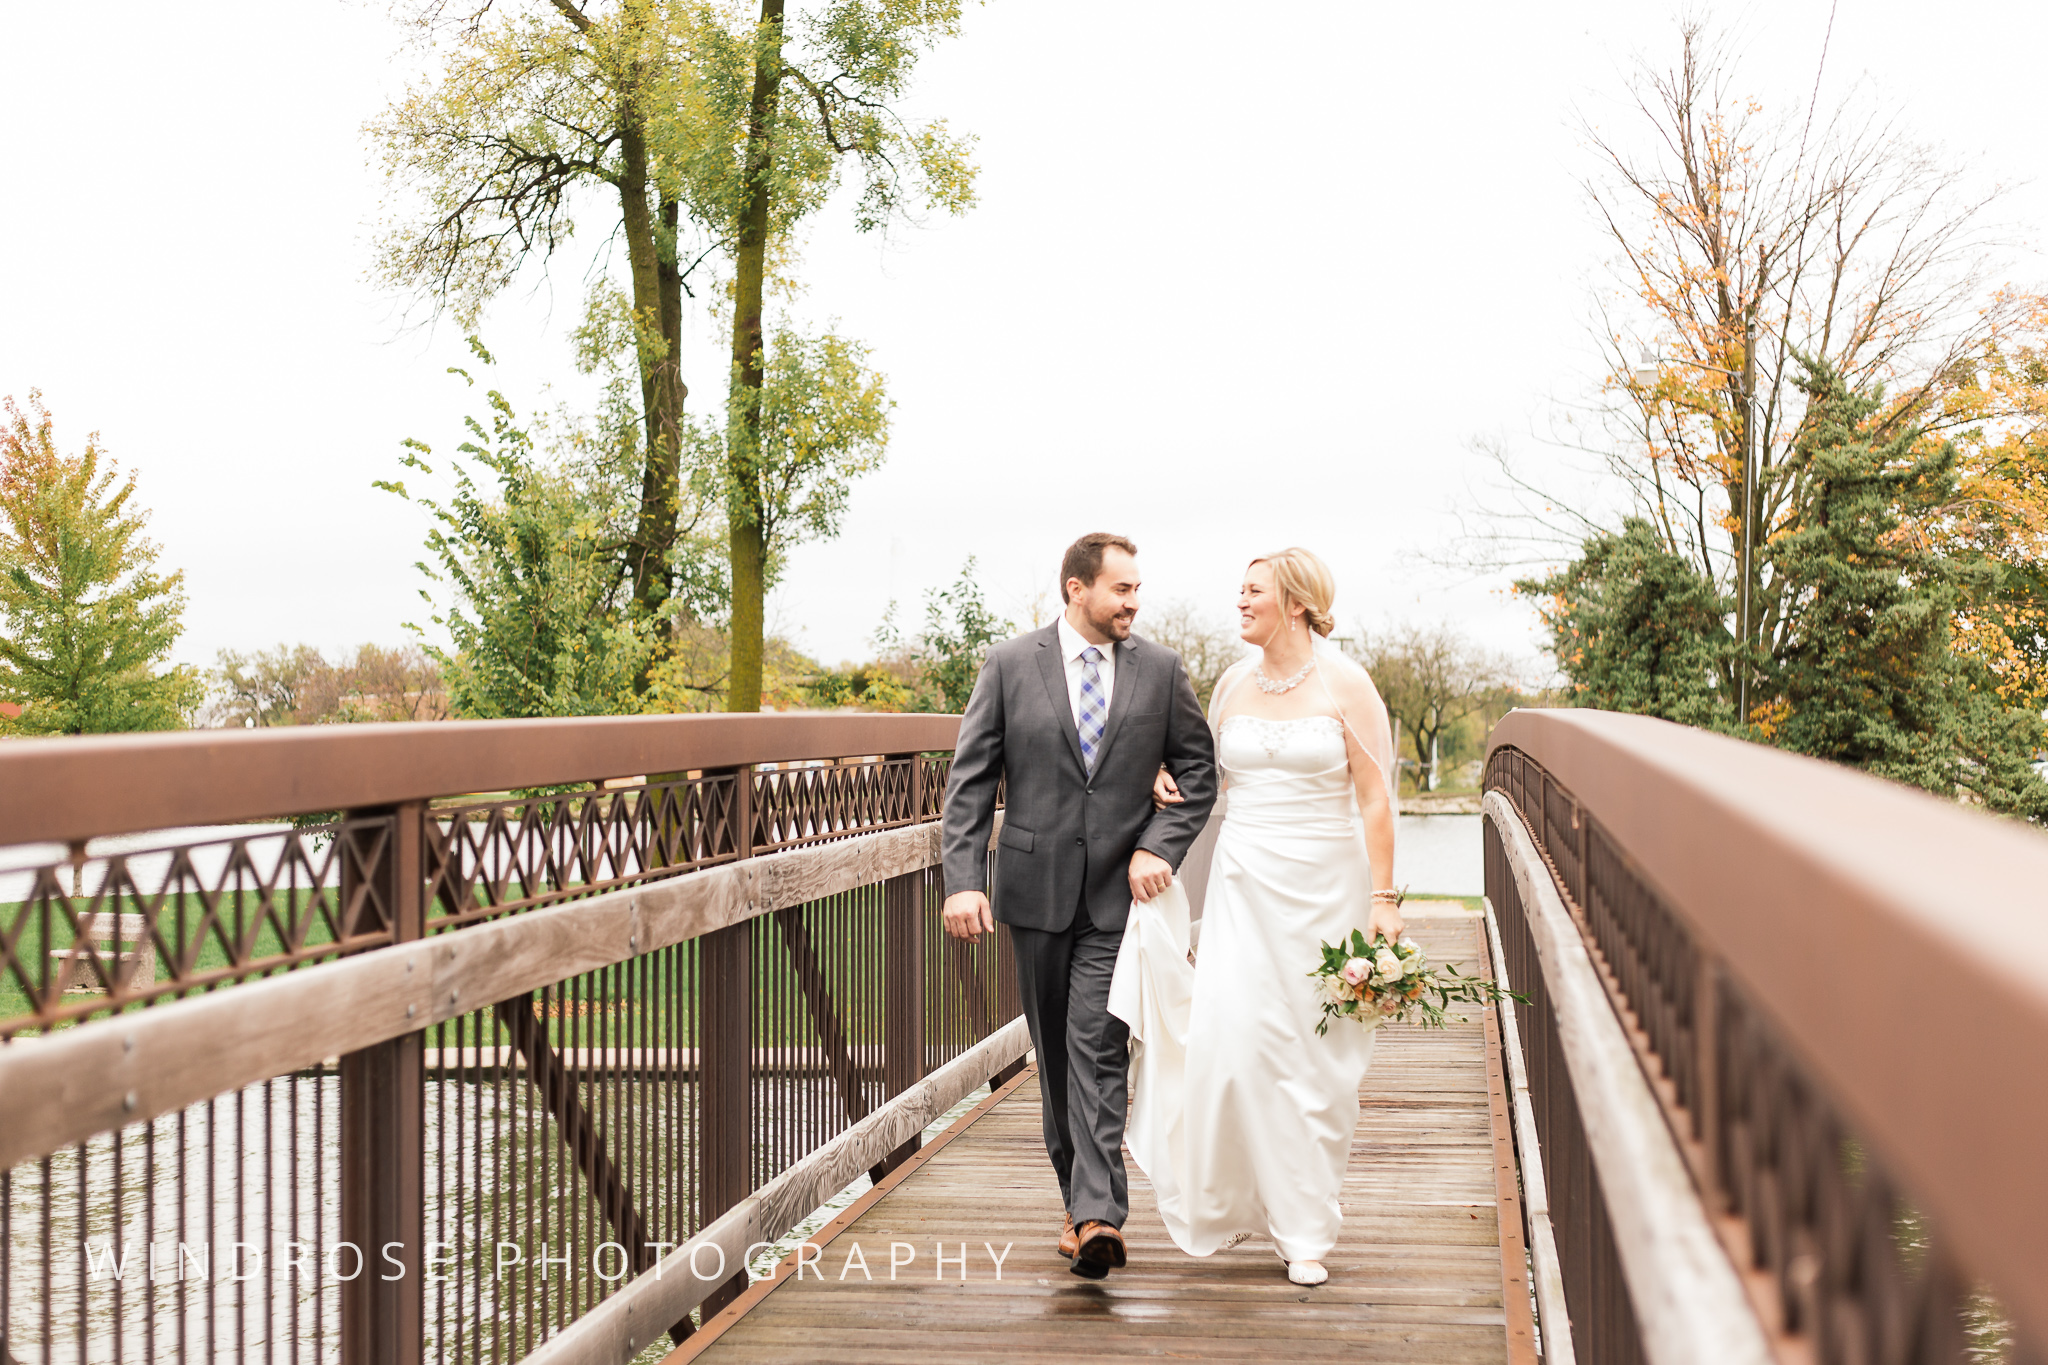 Albert-Lea-Edgewater-Bay-Pavilion-Minnesota-Wedding-Photographer-12.jpg